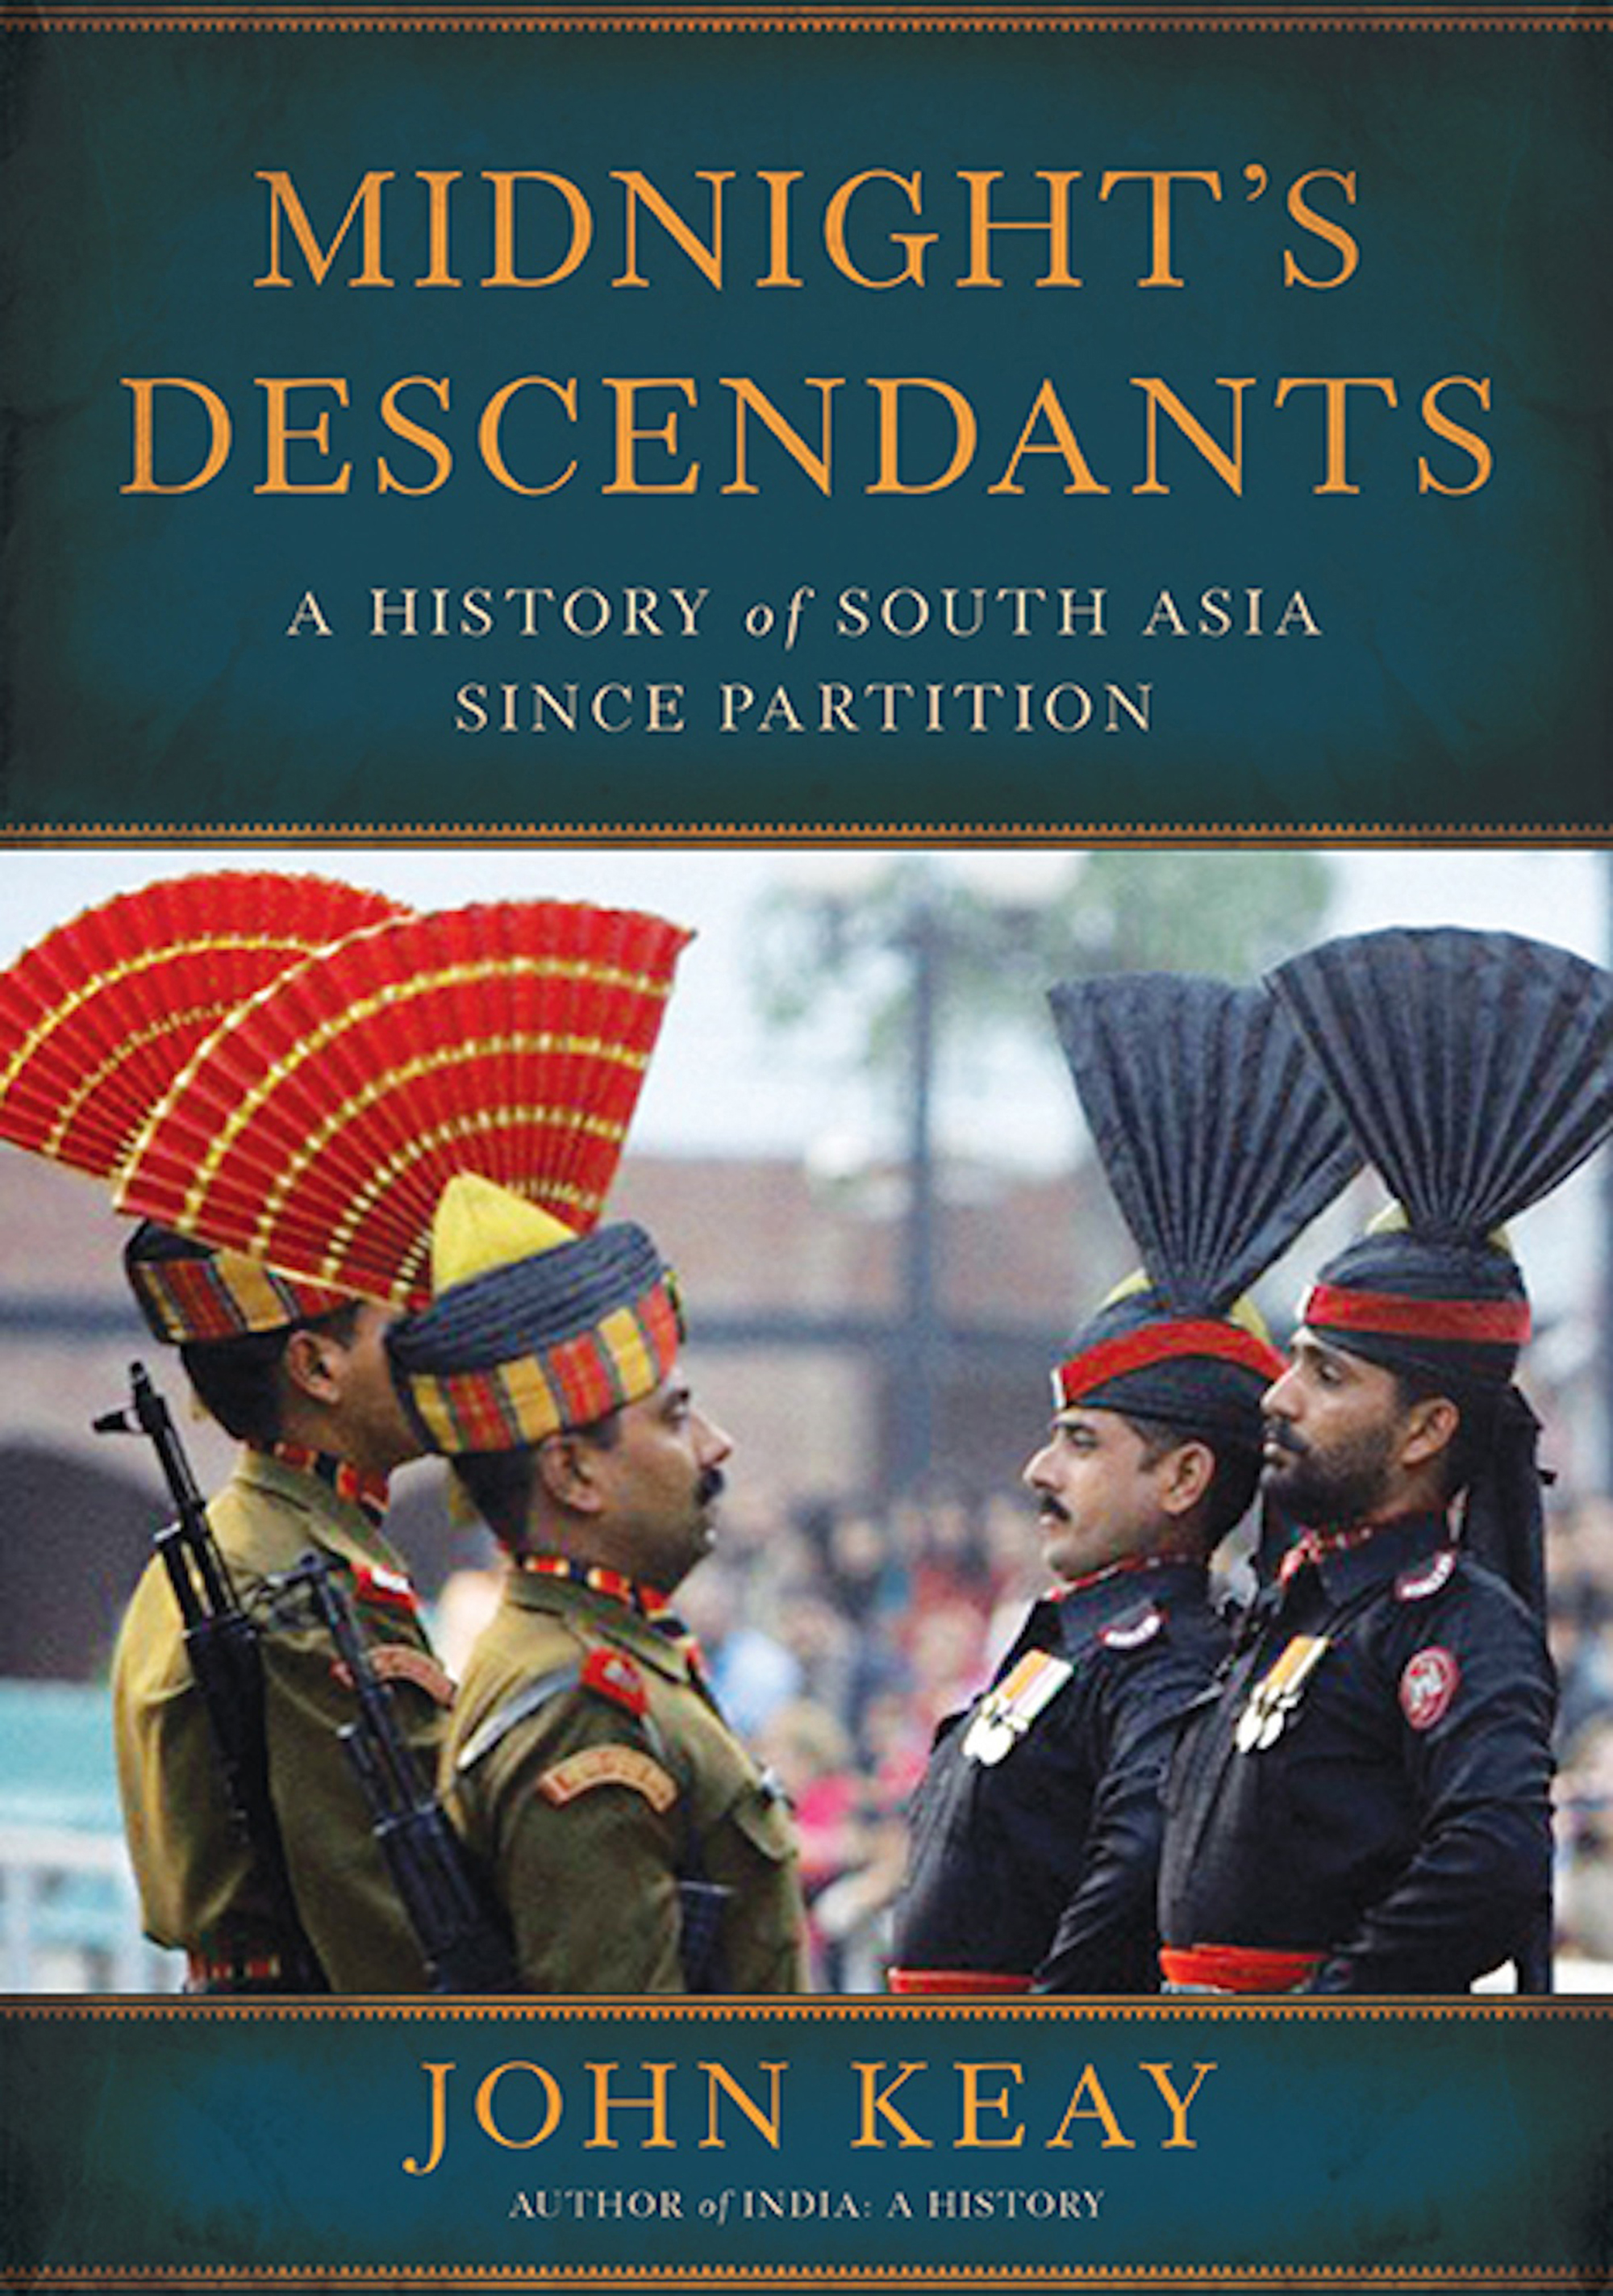 Midnight's Descendants A History of South Asia since Partition